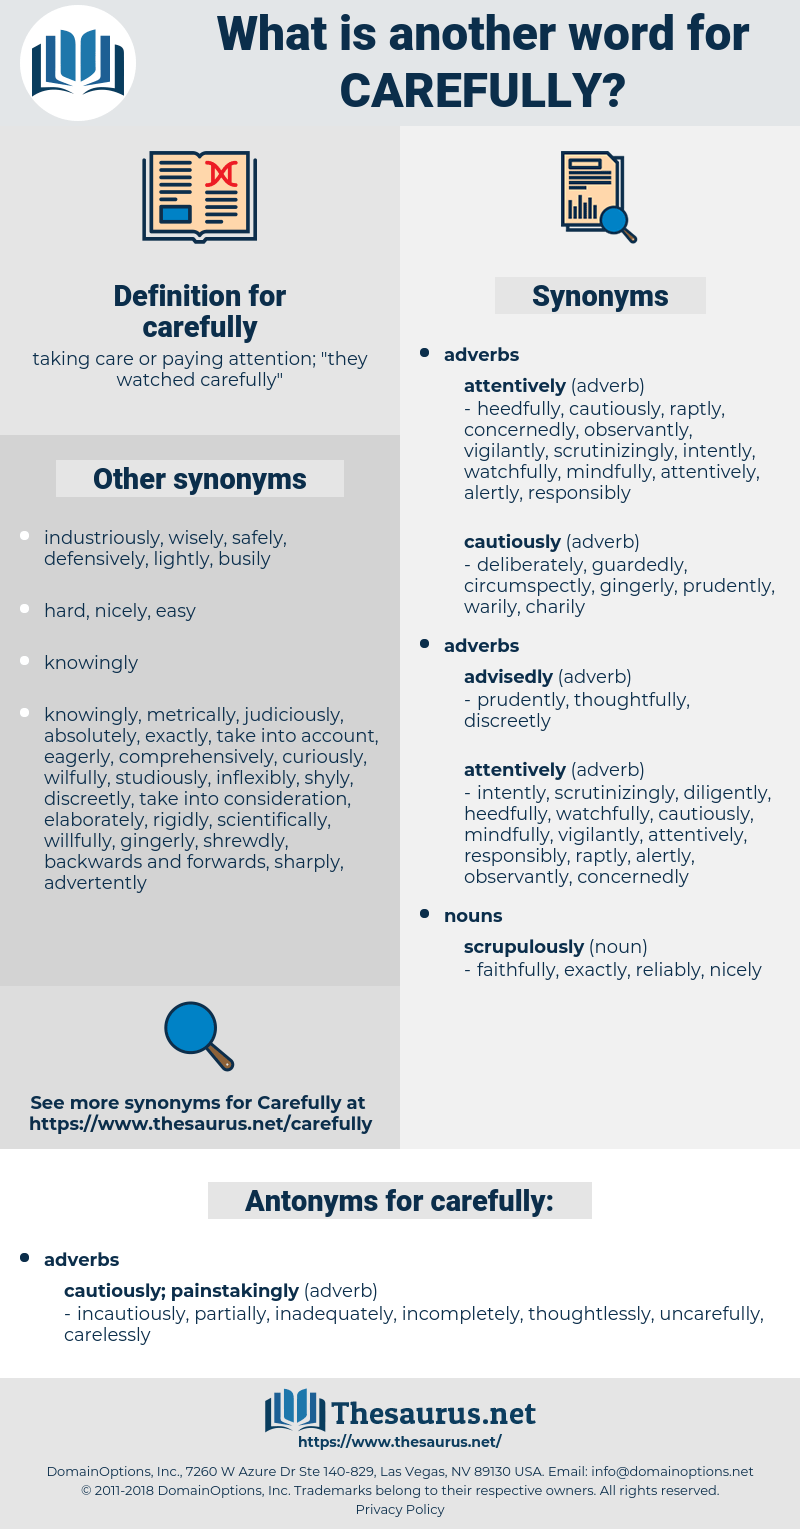 Synonyms for CAREFULLY - Thesaurus.net